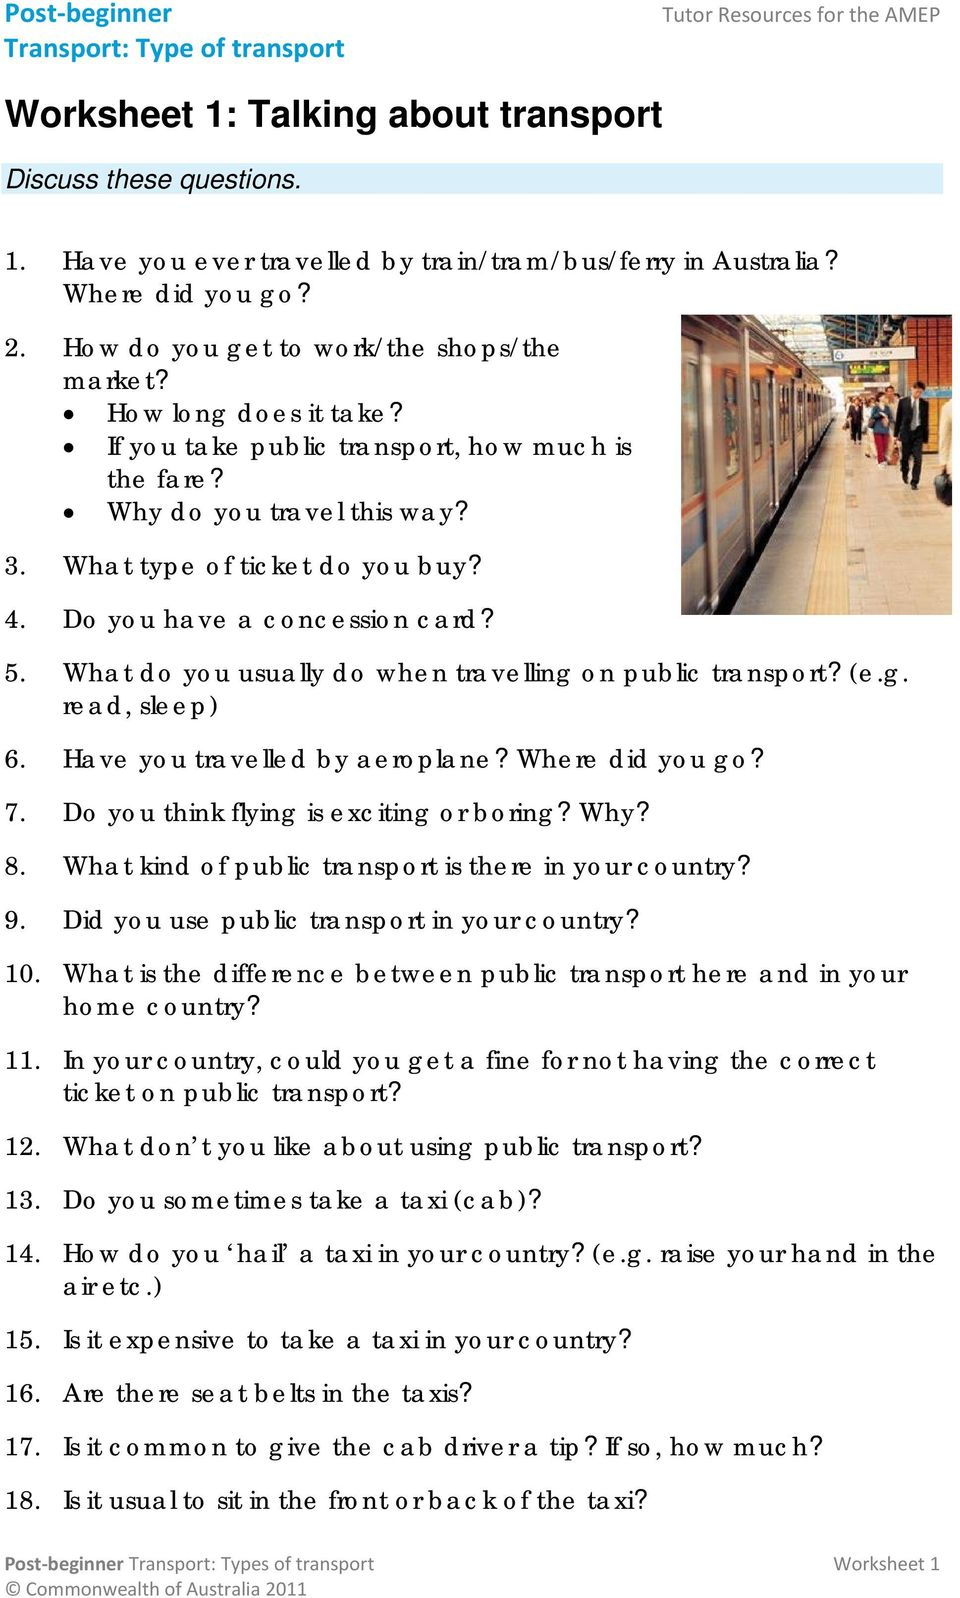 Do you have a concession card? 5. What do you usually do when travelling on public transport? (e.g. read, sleep) 6. Have you travelled by aeroplane? Where did you go? 7.